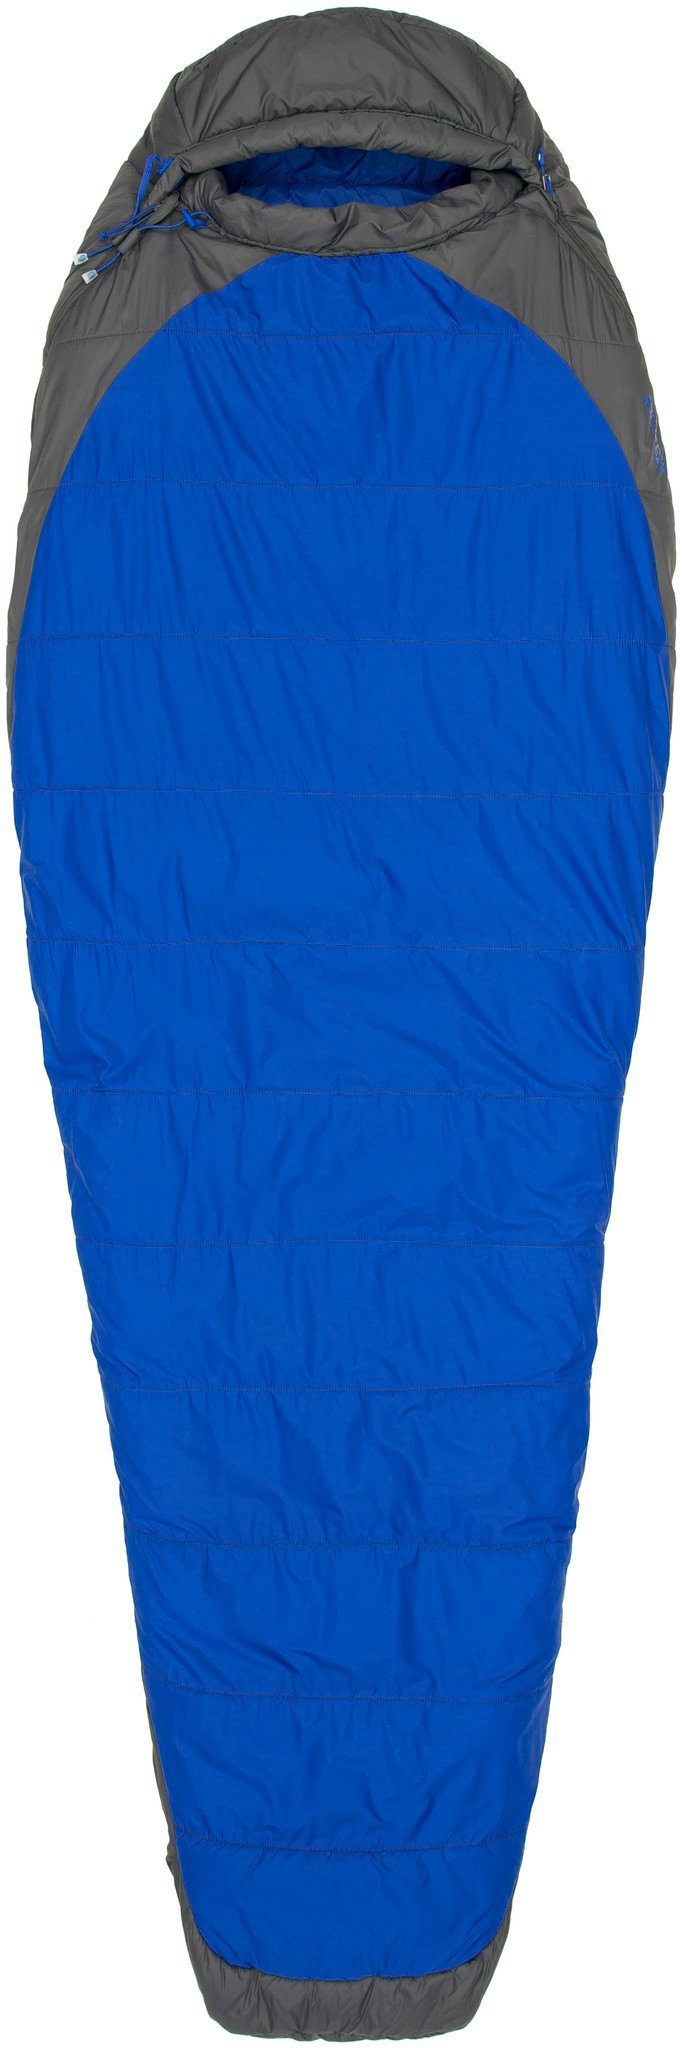 Marmot Wanderrucksack »Trestles Elite 15 Sleeping Bag Regular«